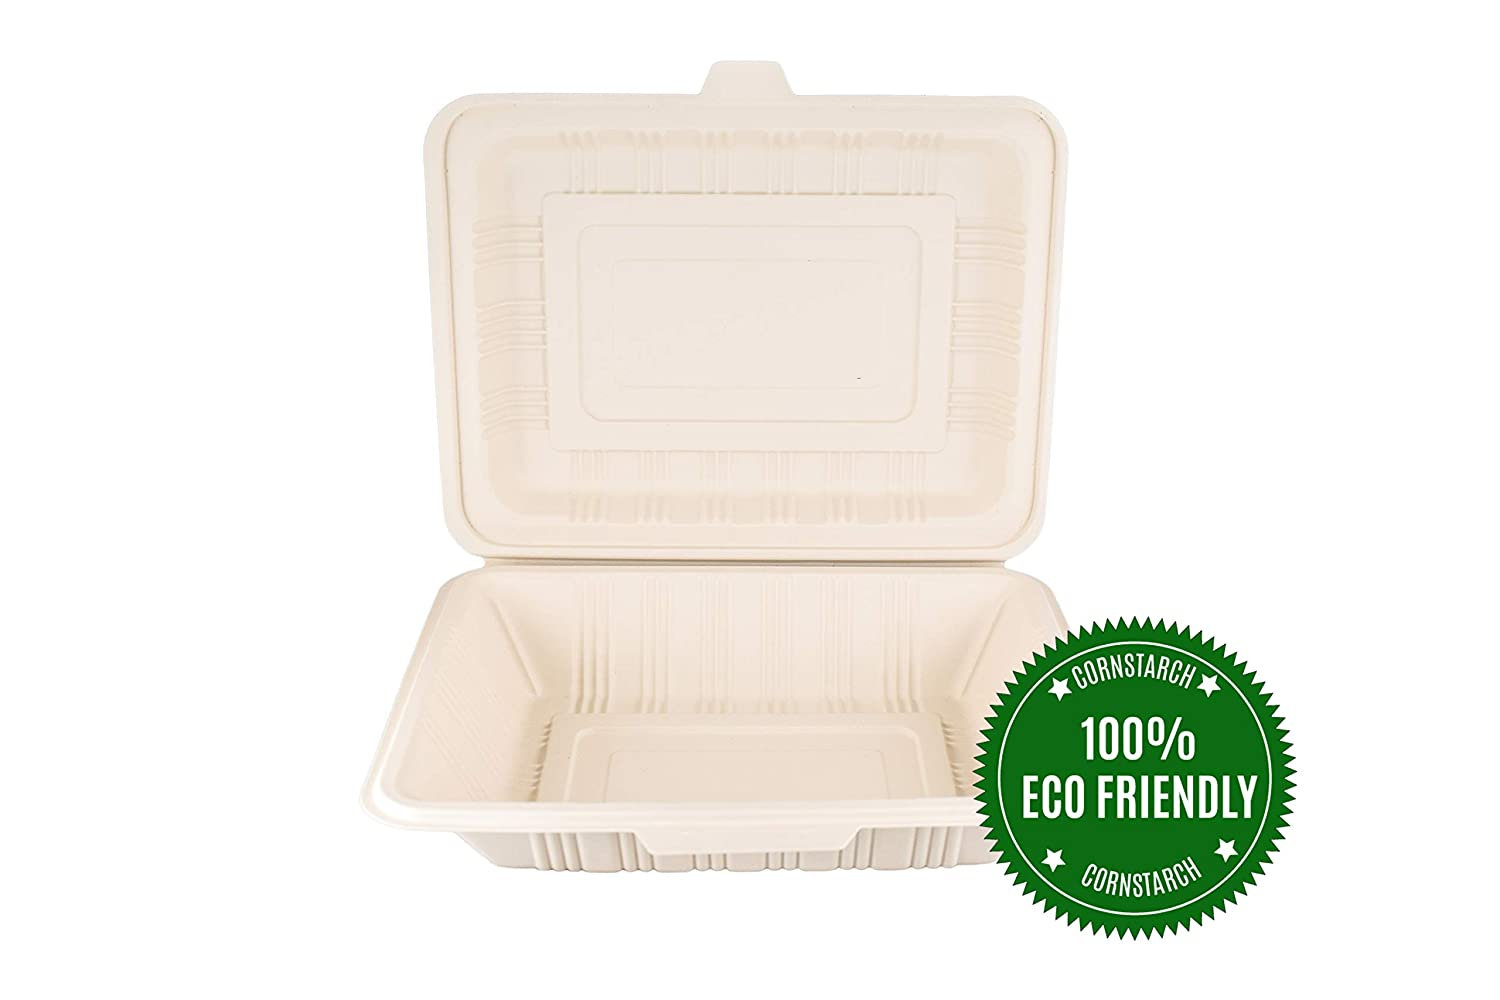 "HeloGreen [125 Count] Eco Friendly To Go Containers (7""x 5"", 1-Compartment) - Non Soggy, Leak Proof, Disposable To Go Boxes, Cornstarch - Microwave Safe Take Out Food Containers"